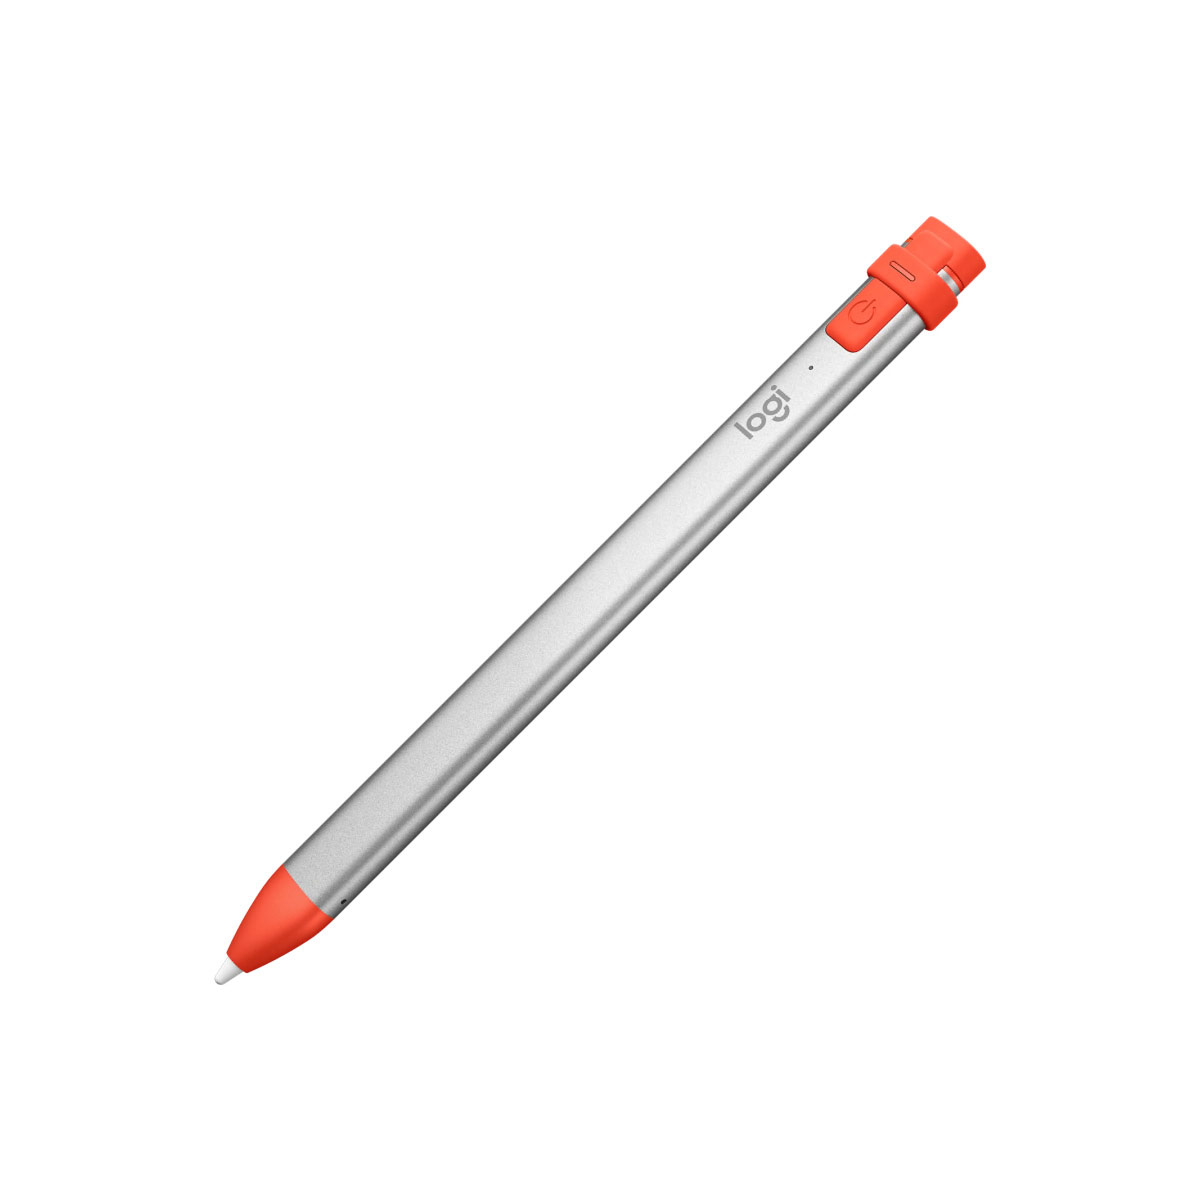 Logitech Crayon Stylus Pen for iPad